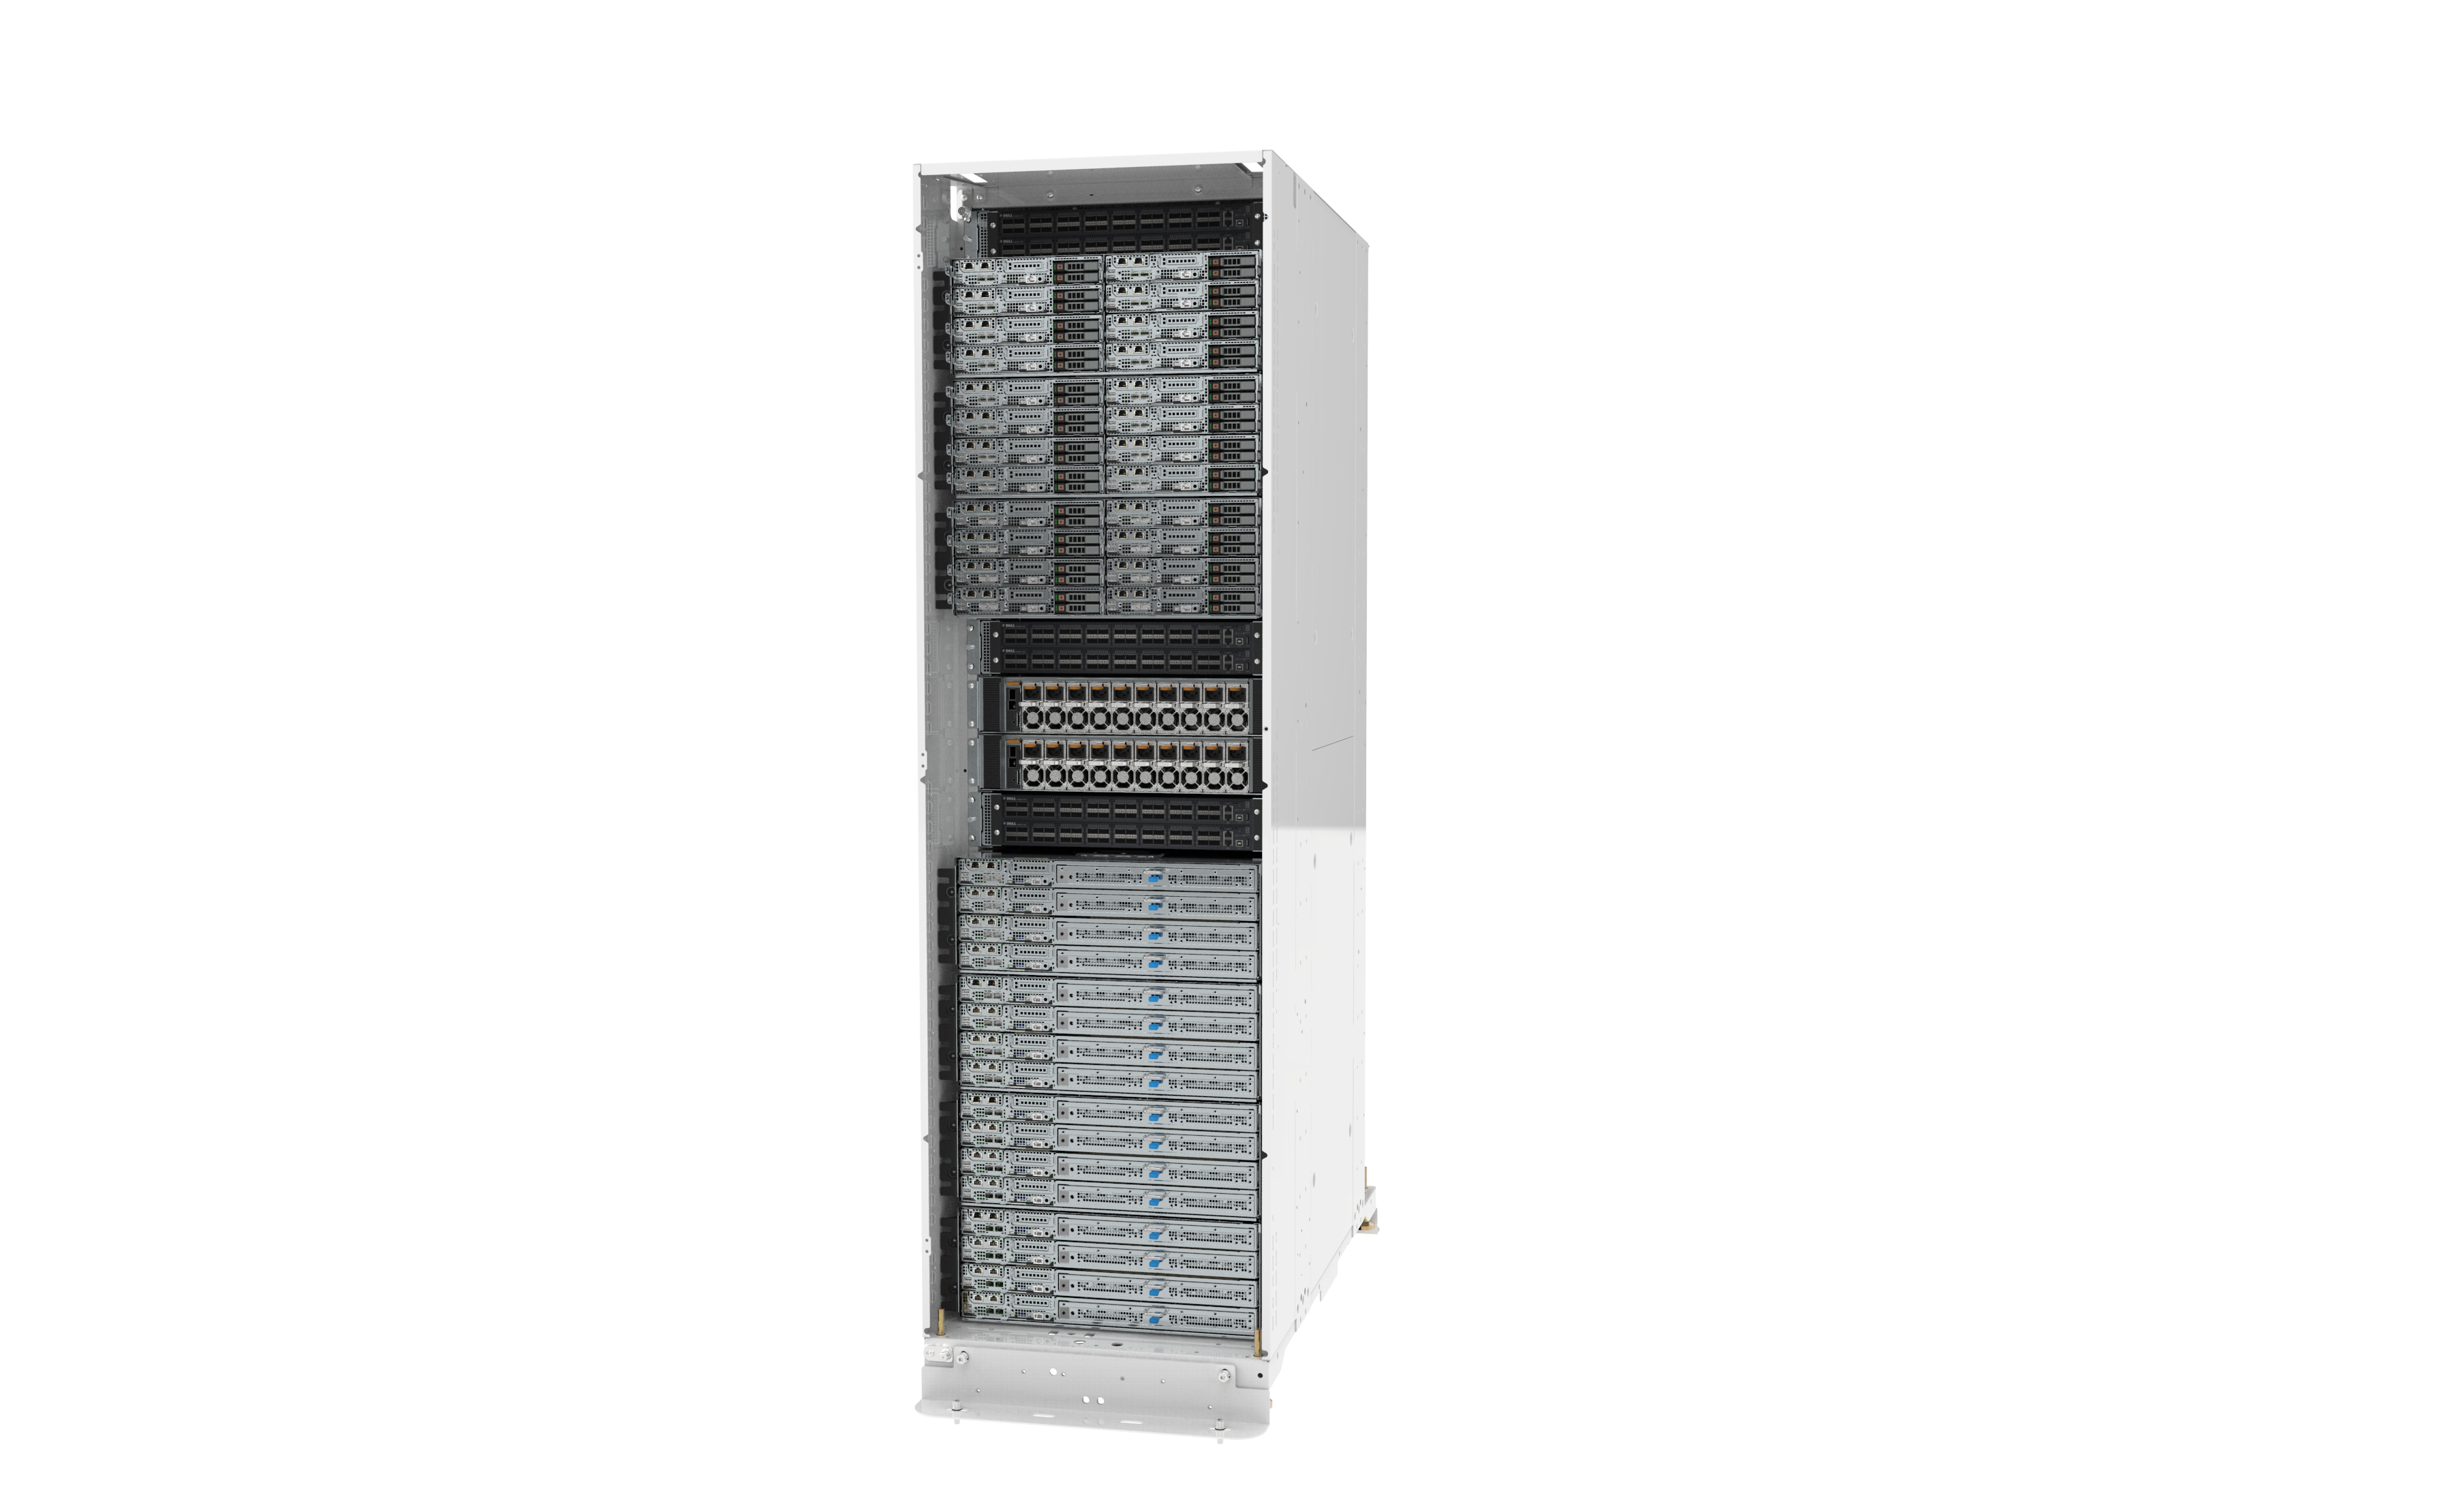 Rack Scale Infrastructure